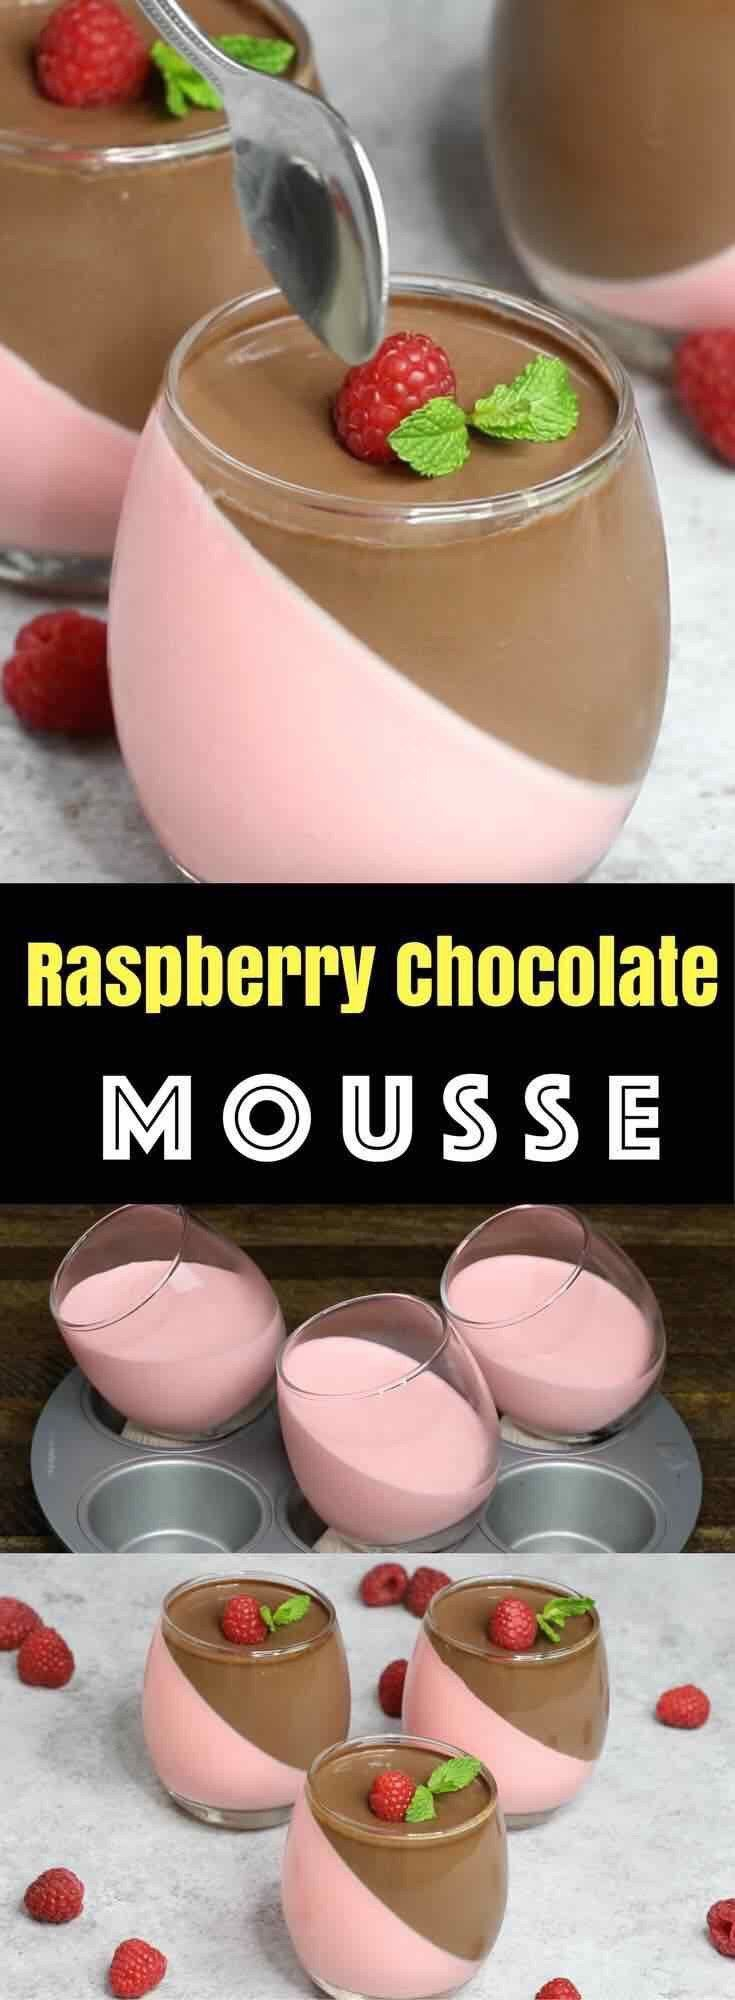 15 Creamy Chocolate Mousse Recipes   Chief Health